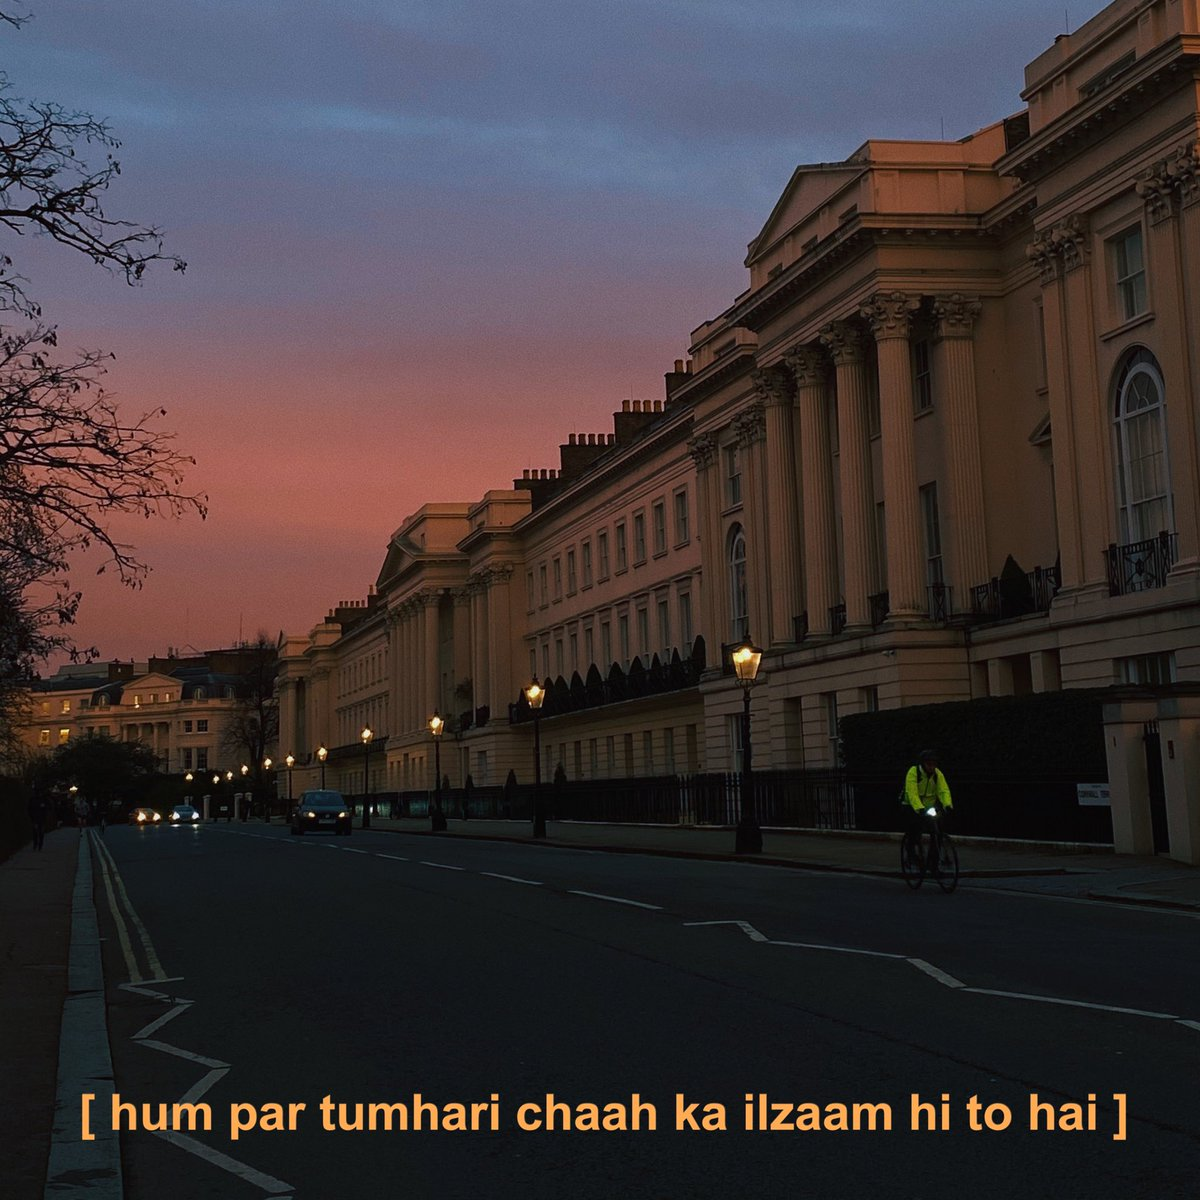 london sunsets and some of Faiz Ahmed Faiz 🌅